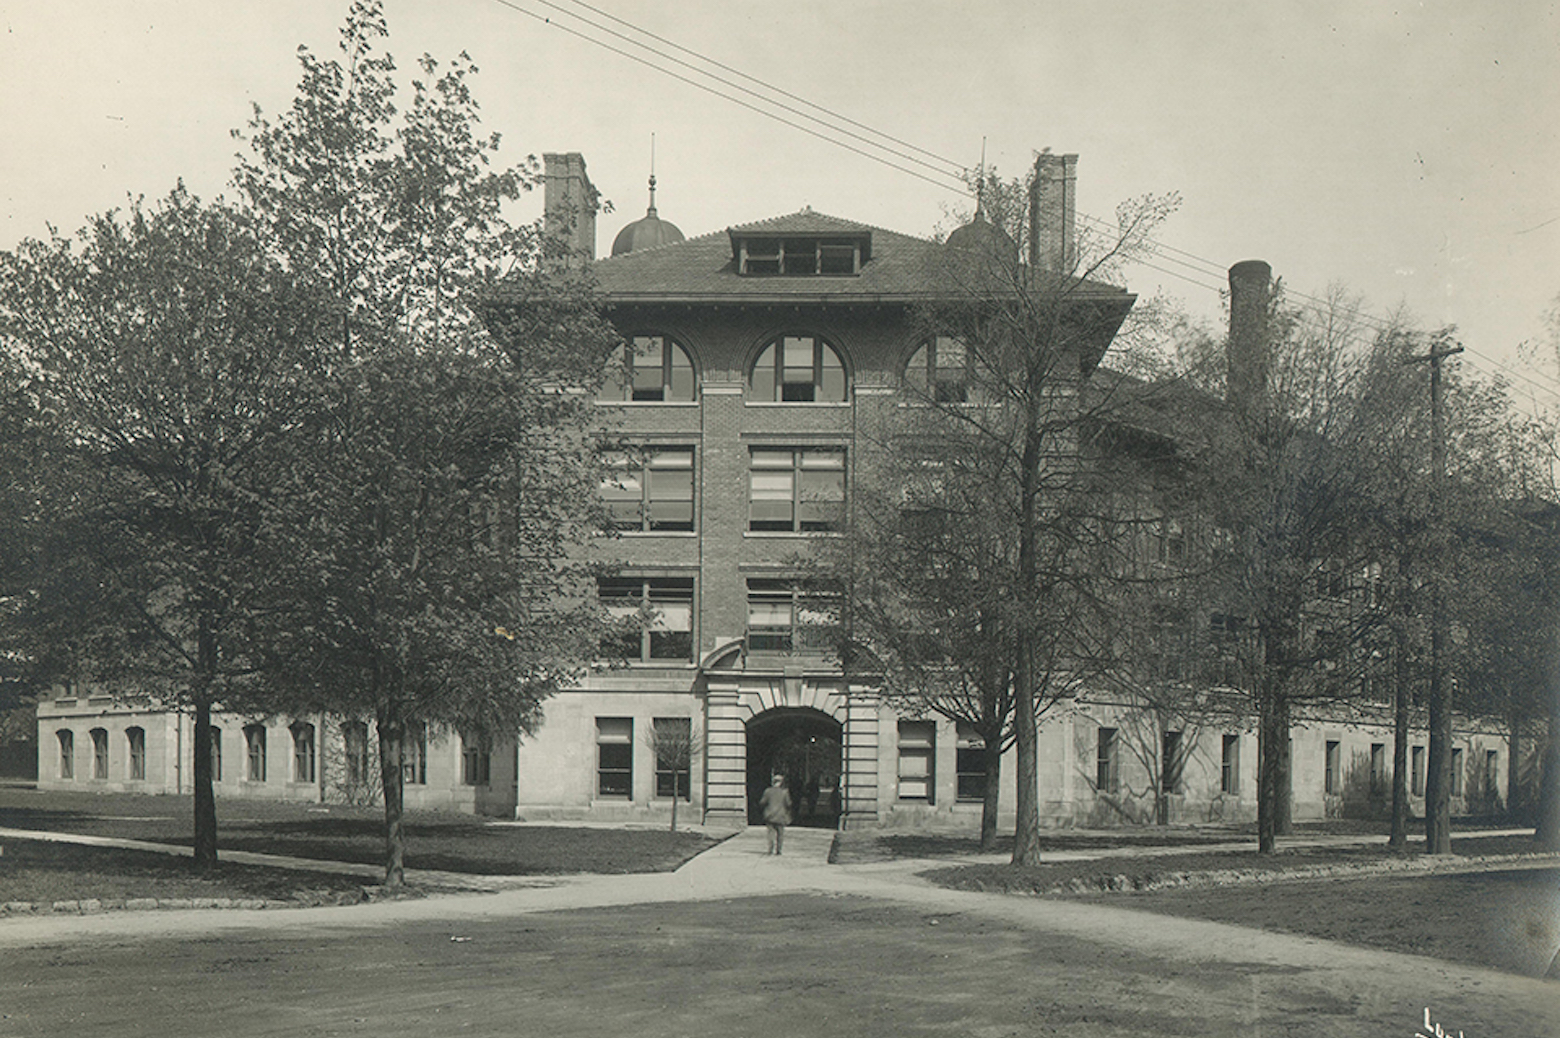 West Engineering Building in 1904